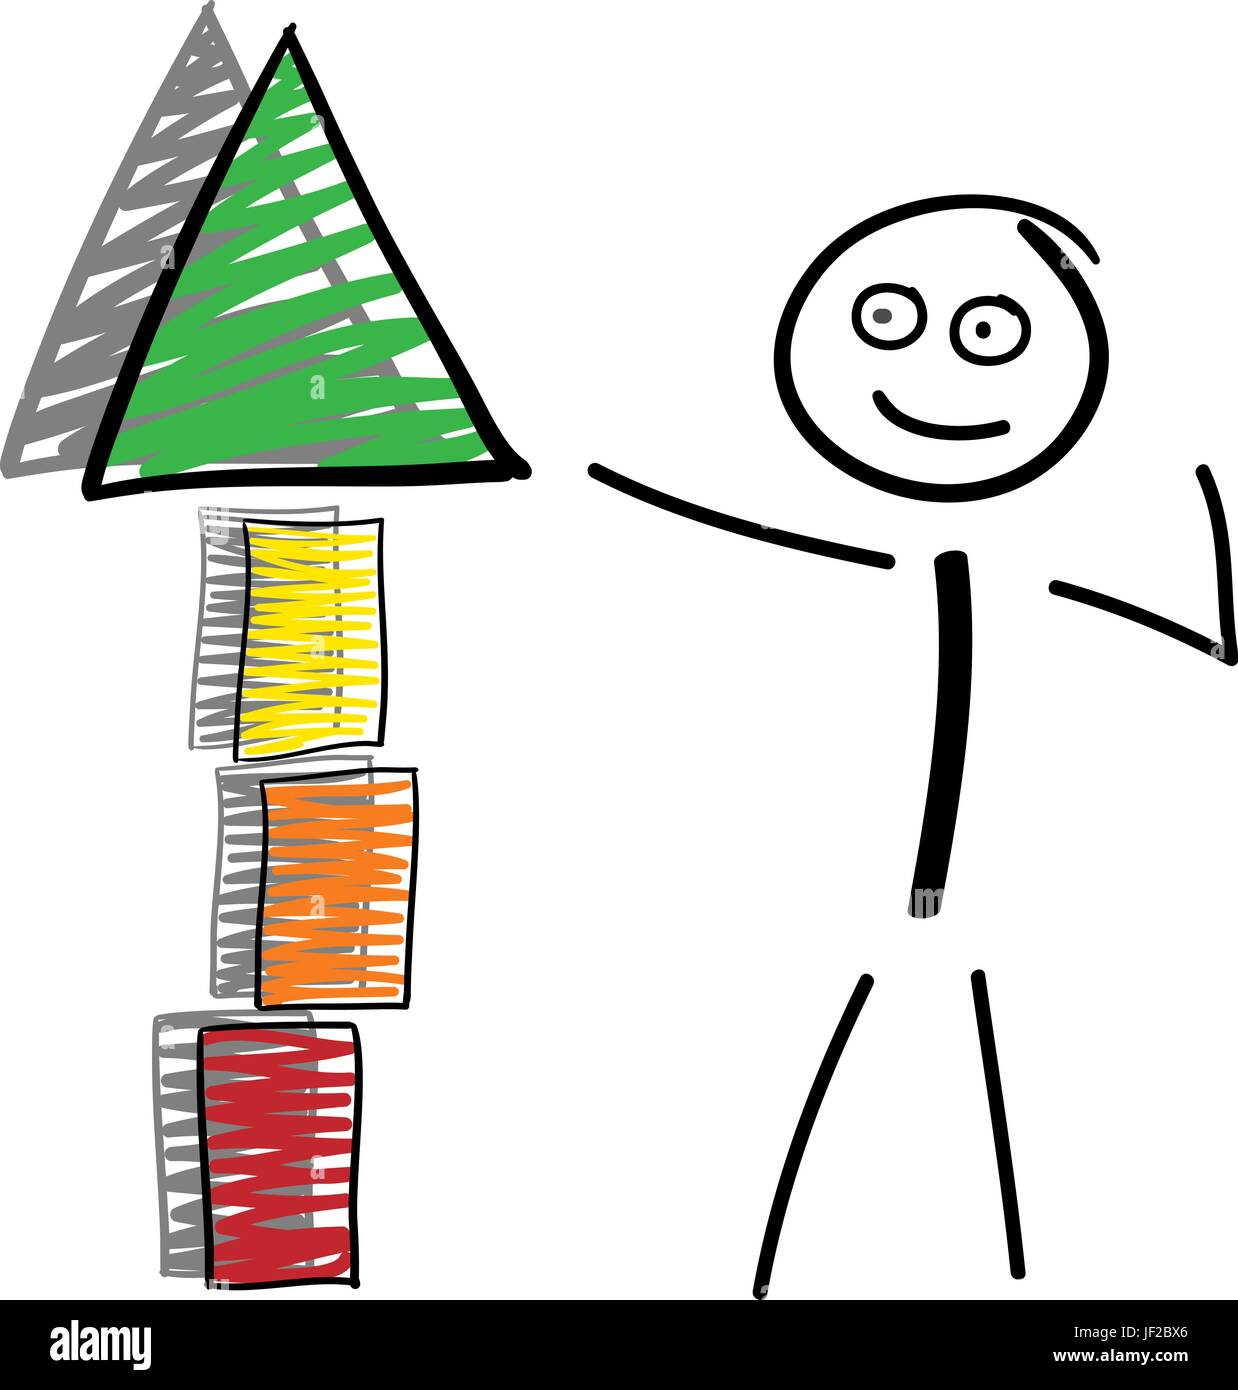 stick figure pointing to tower top from red to green with shadow